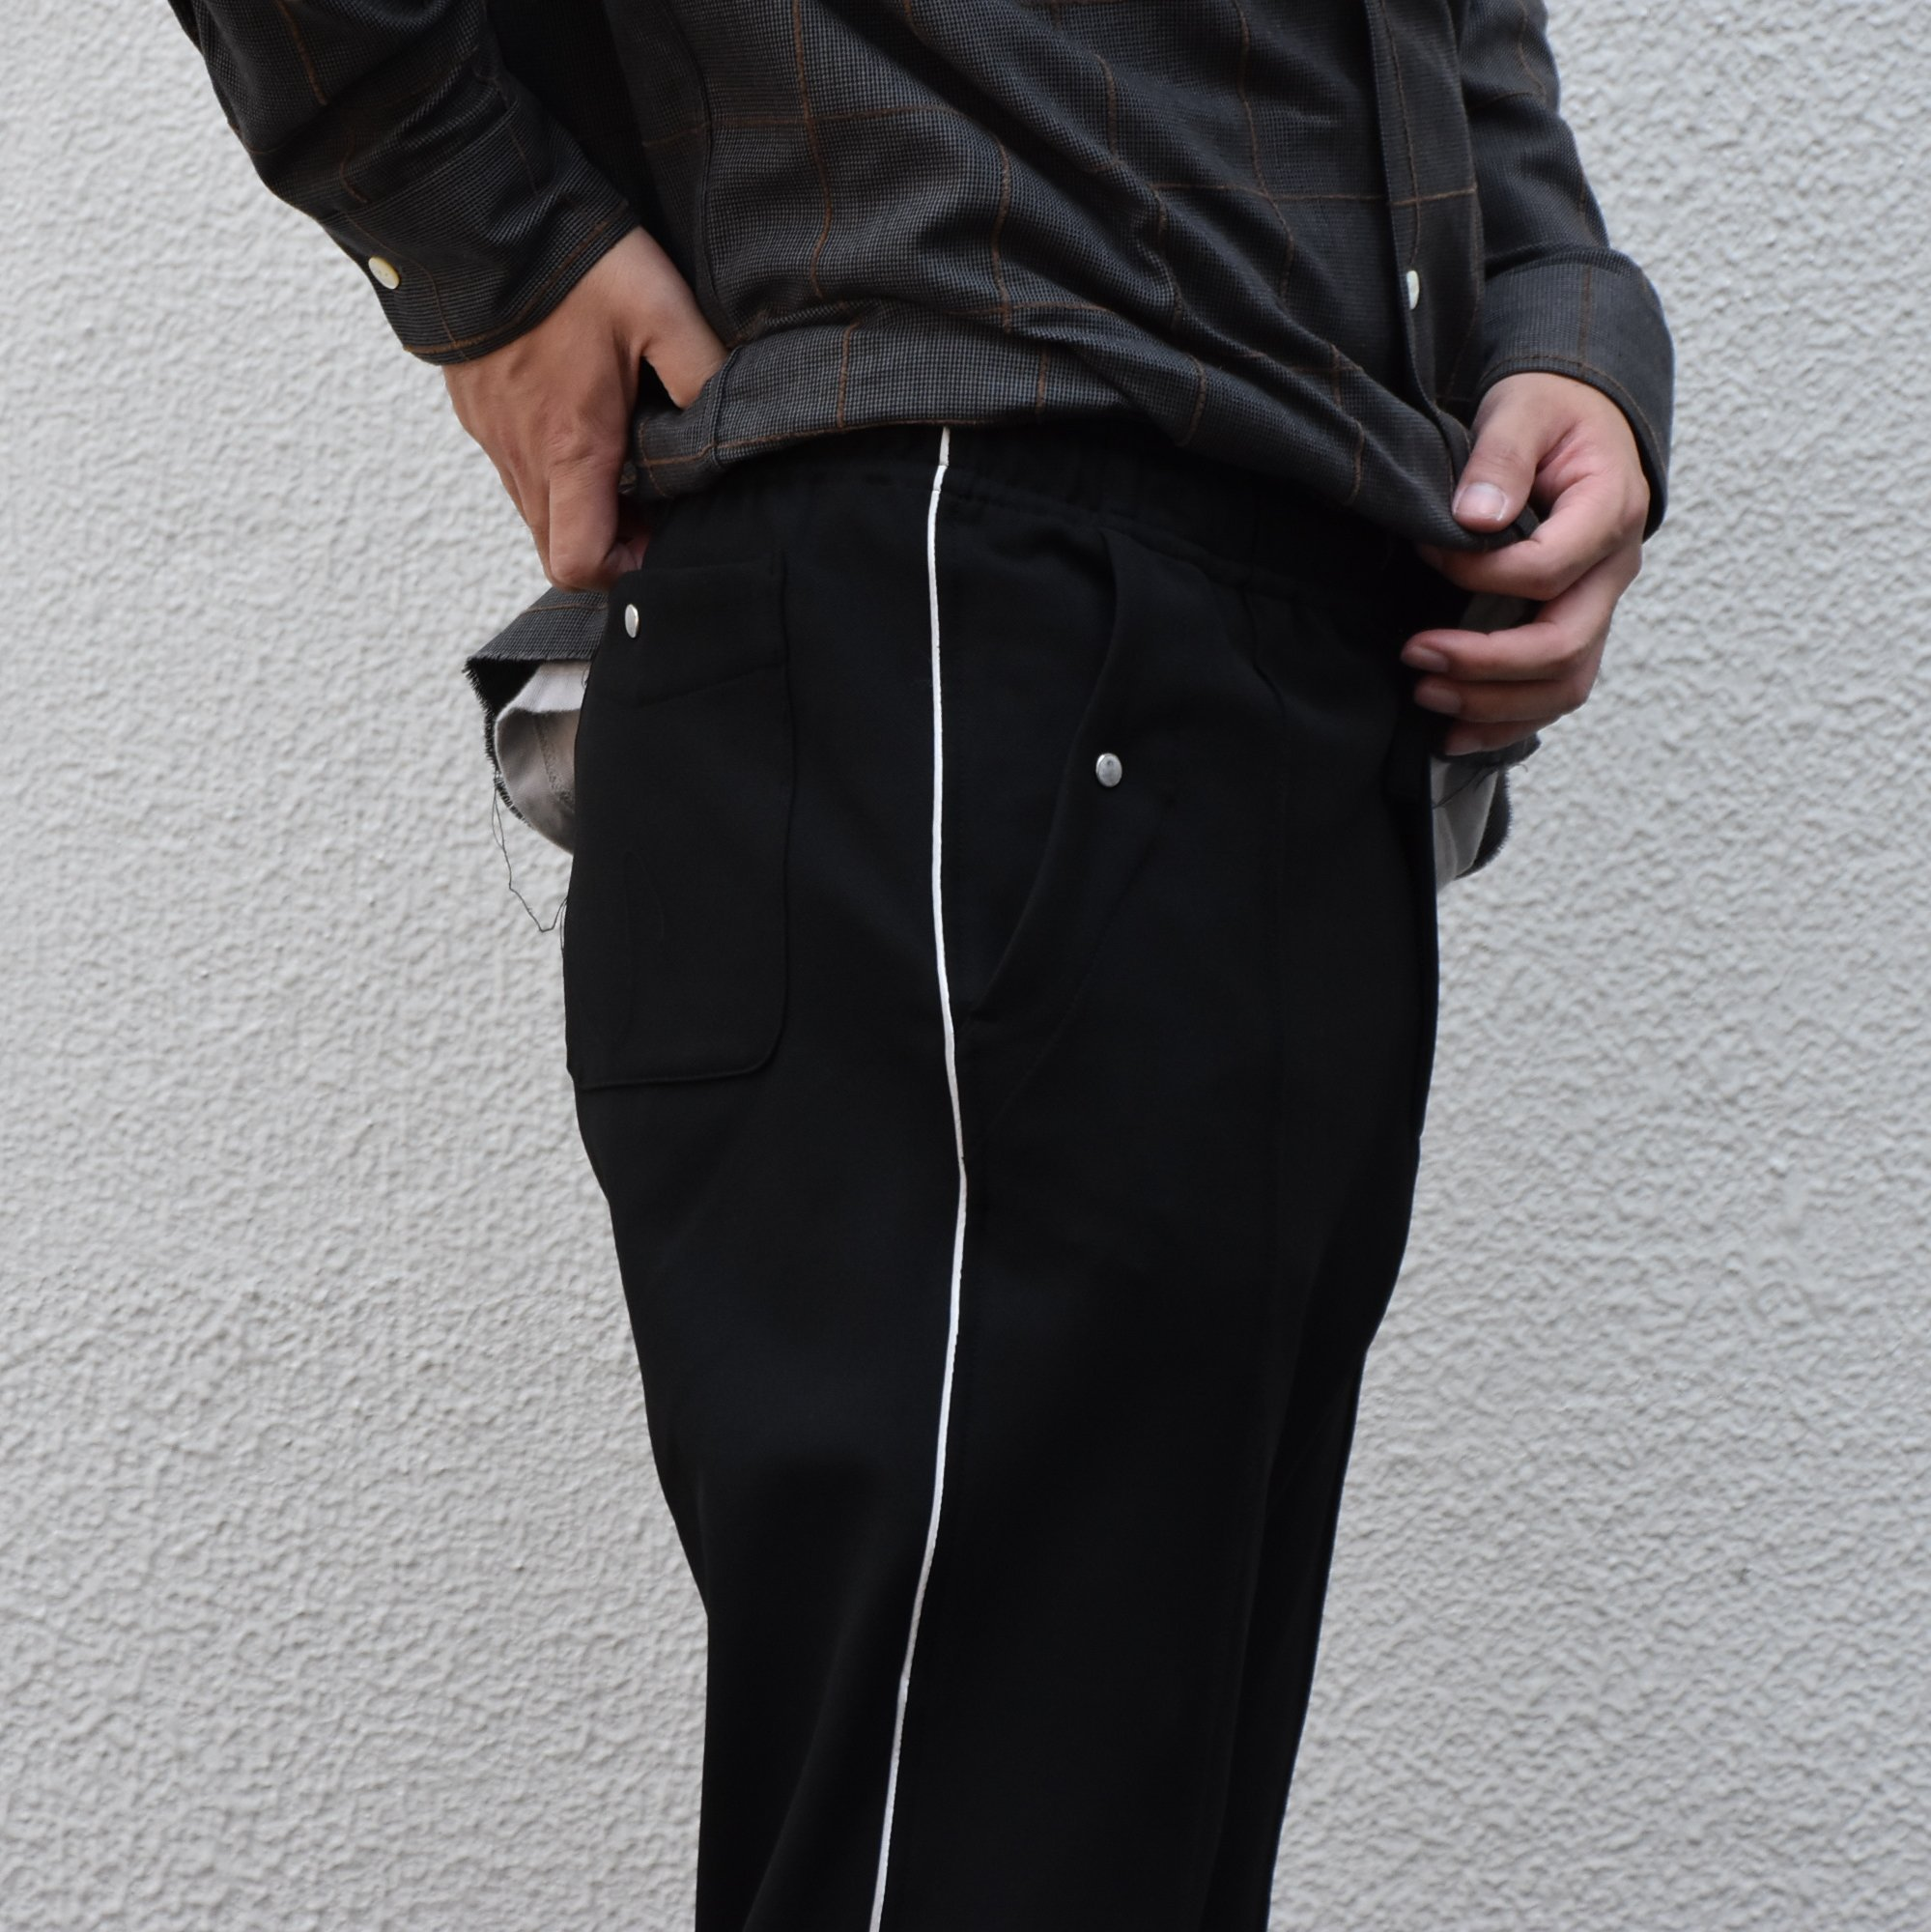 【2020】NEEDLES(ニードルス) Piping cowboy pants -BLACK- #HM-135(5)